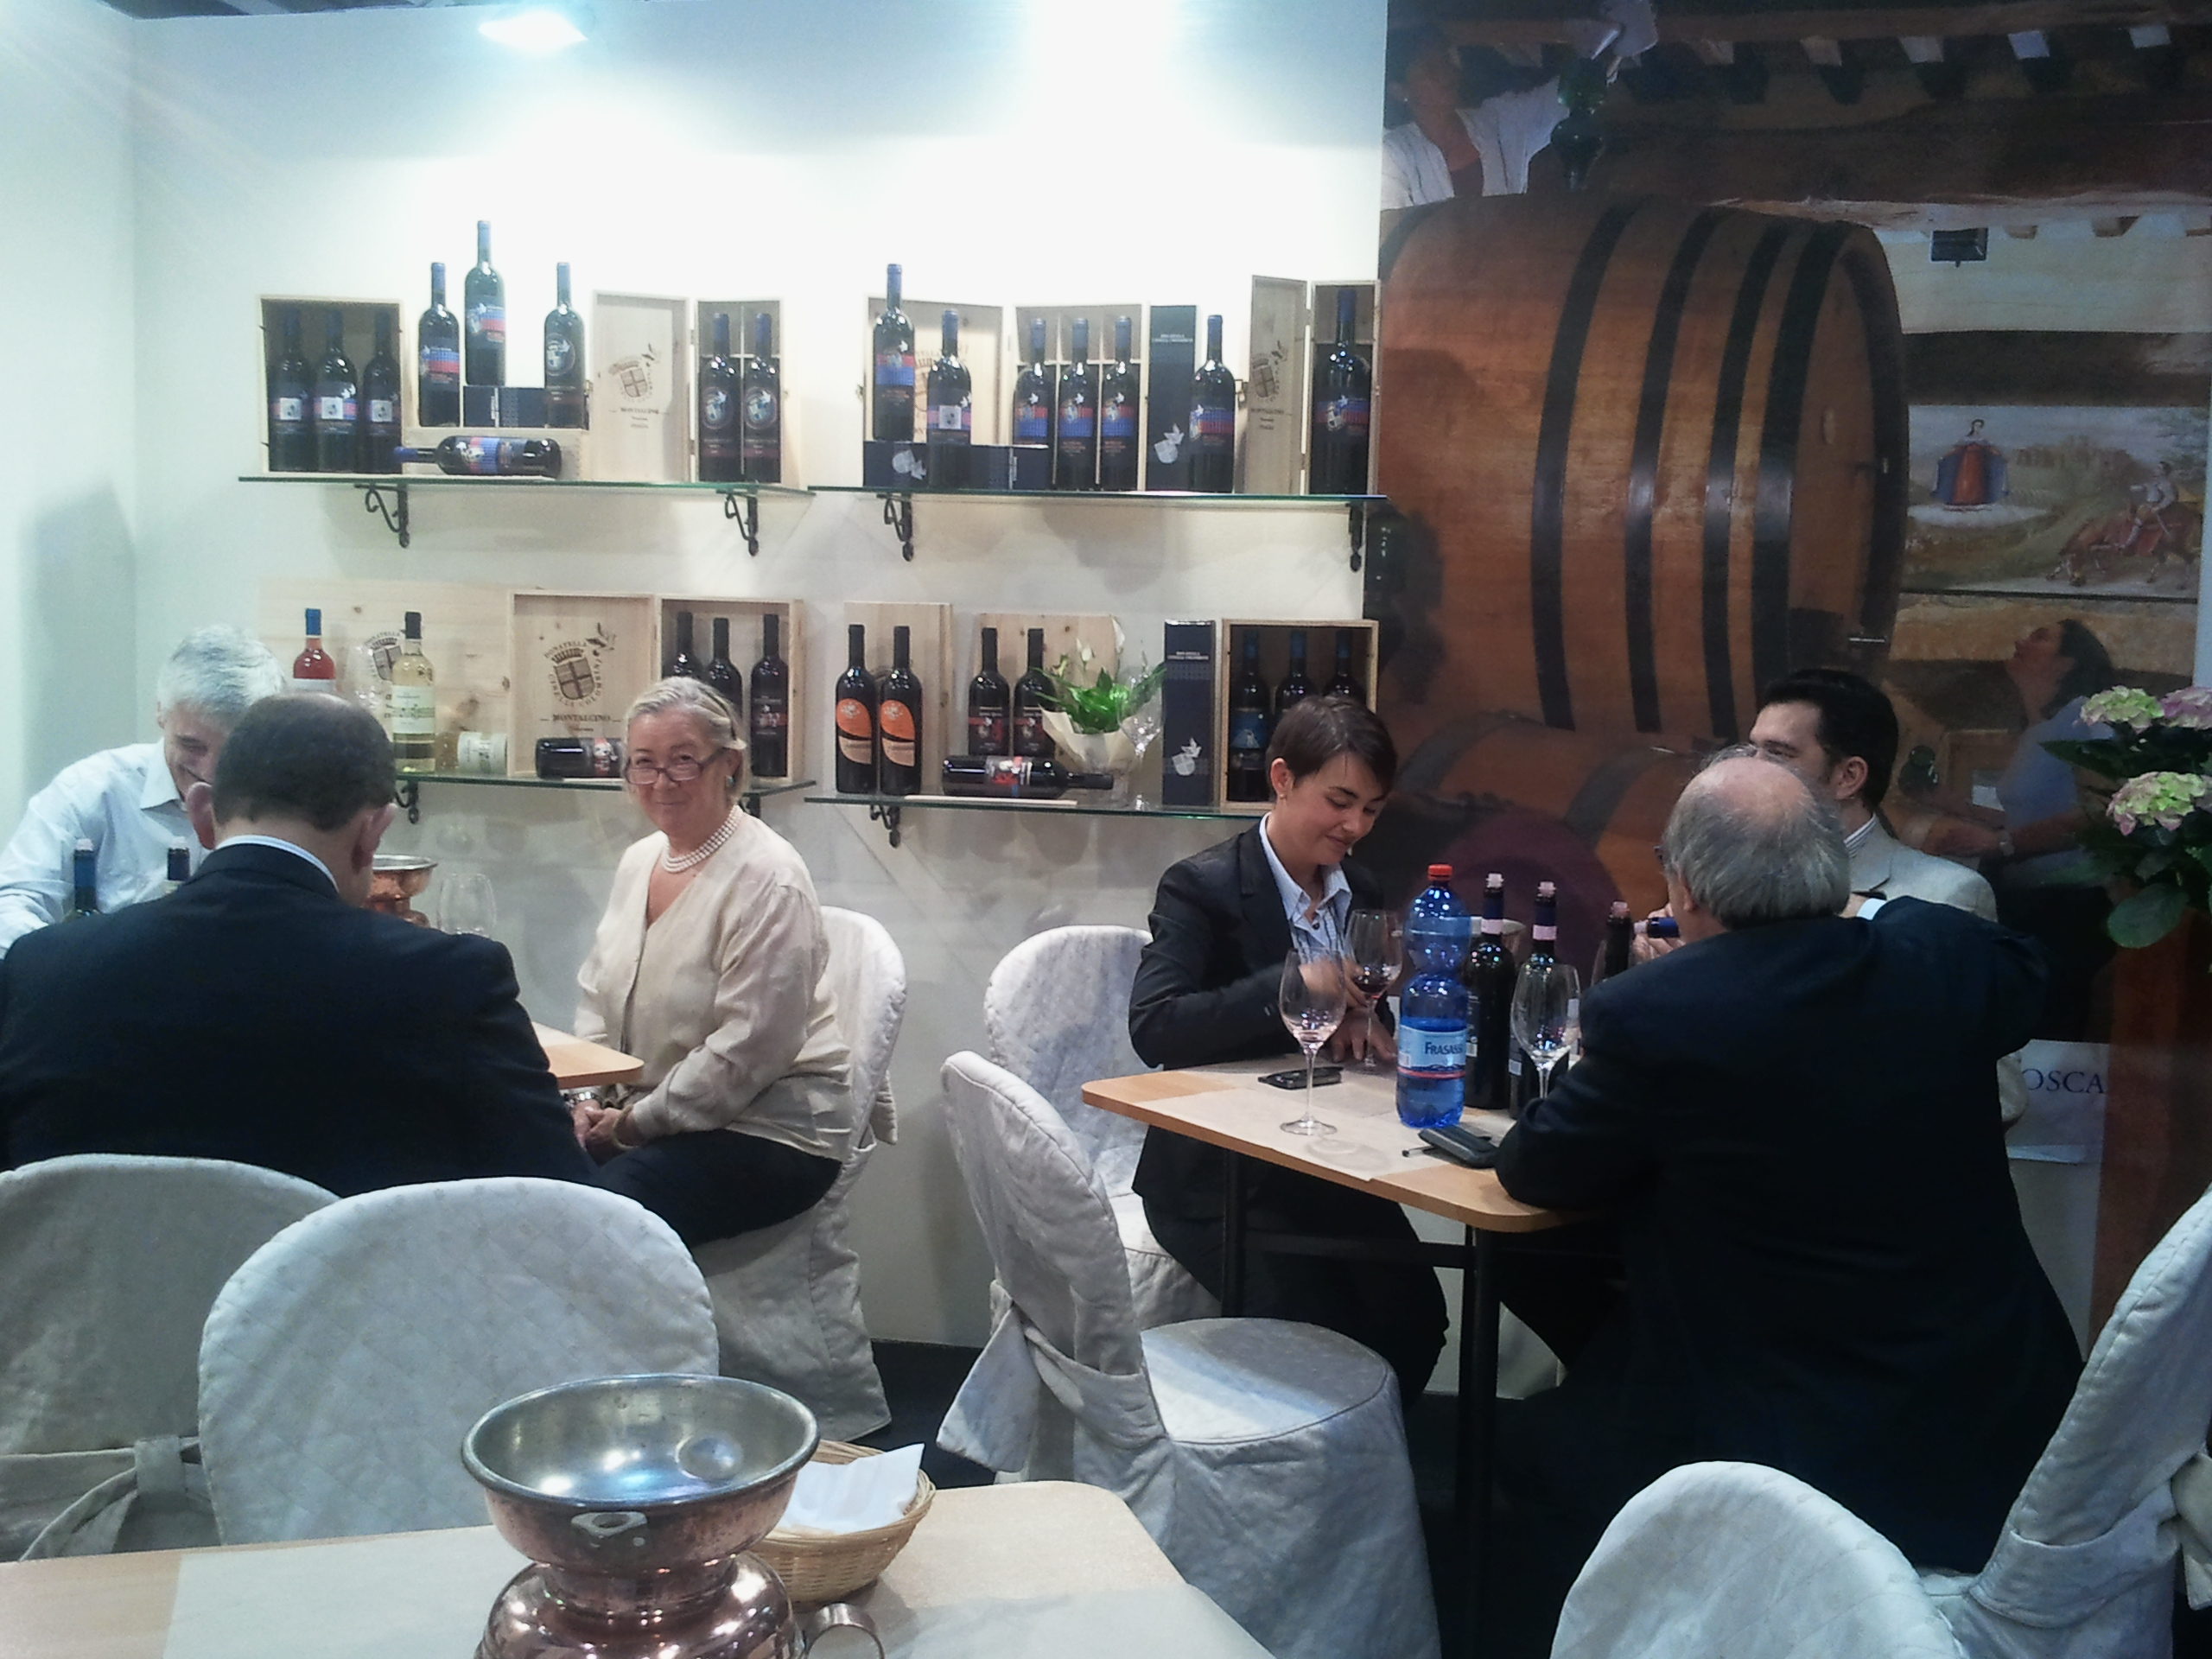 Vinitaly 2011. Assaggio del Brunello Donatella Cinelli Colombini